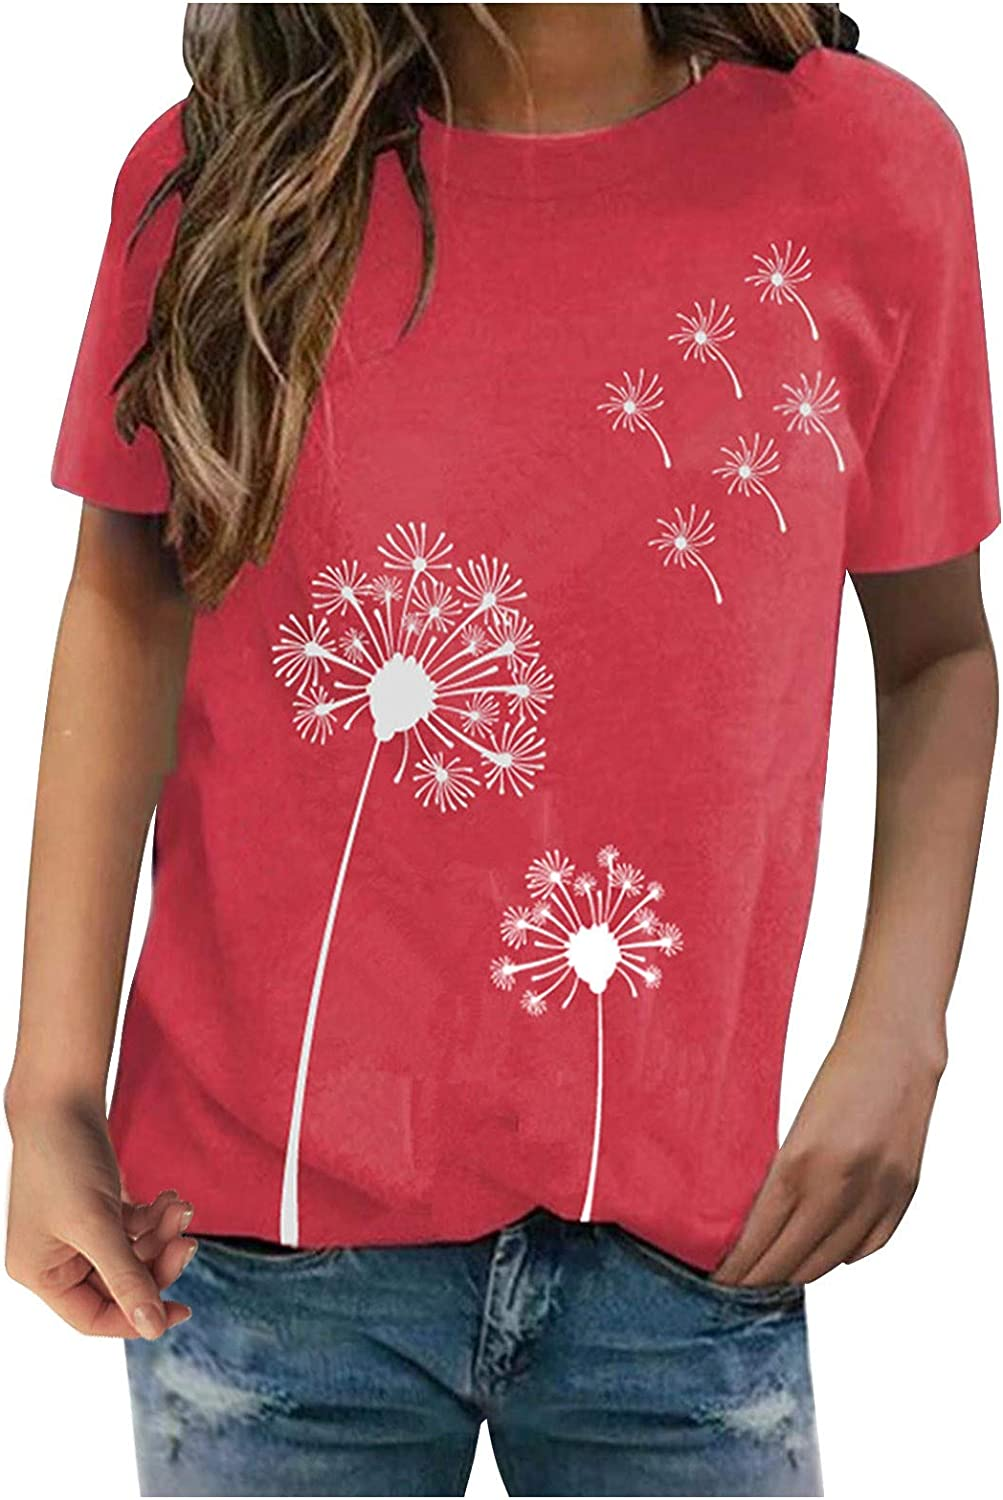 FUNEY Womens Max 49% OFF Plus Size Tucson Mall Short Dandelion Sleeve Shirt Butterfly T